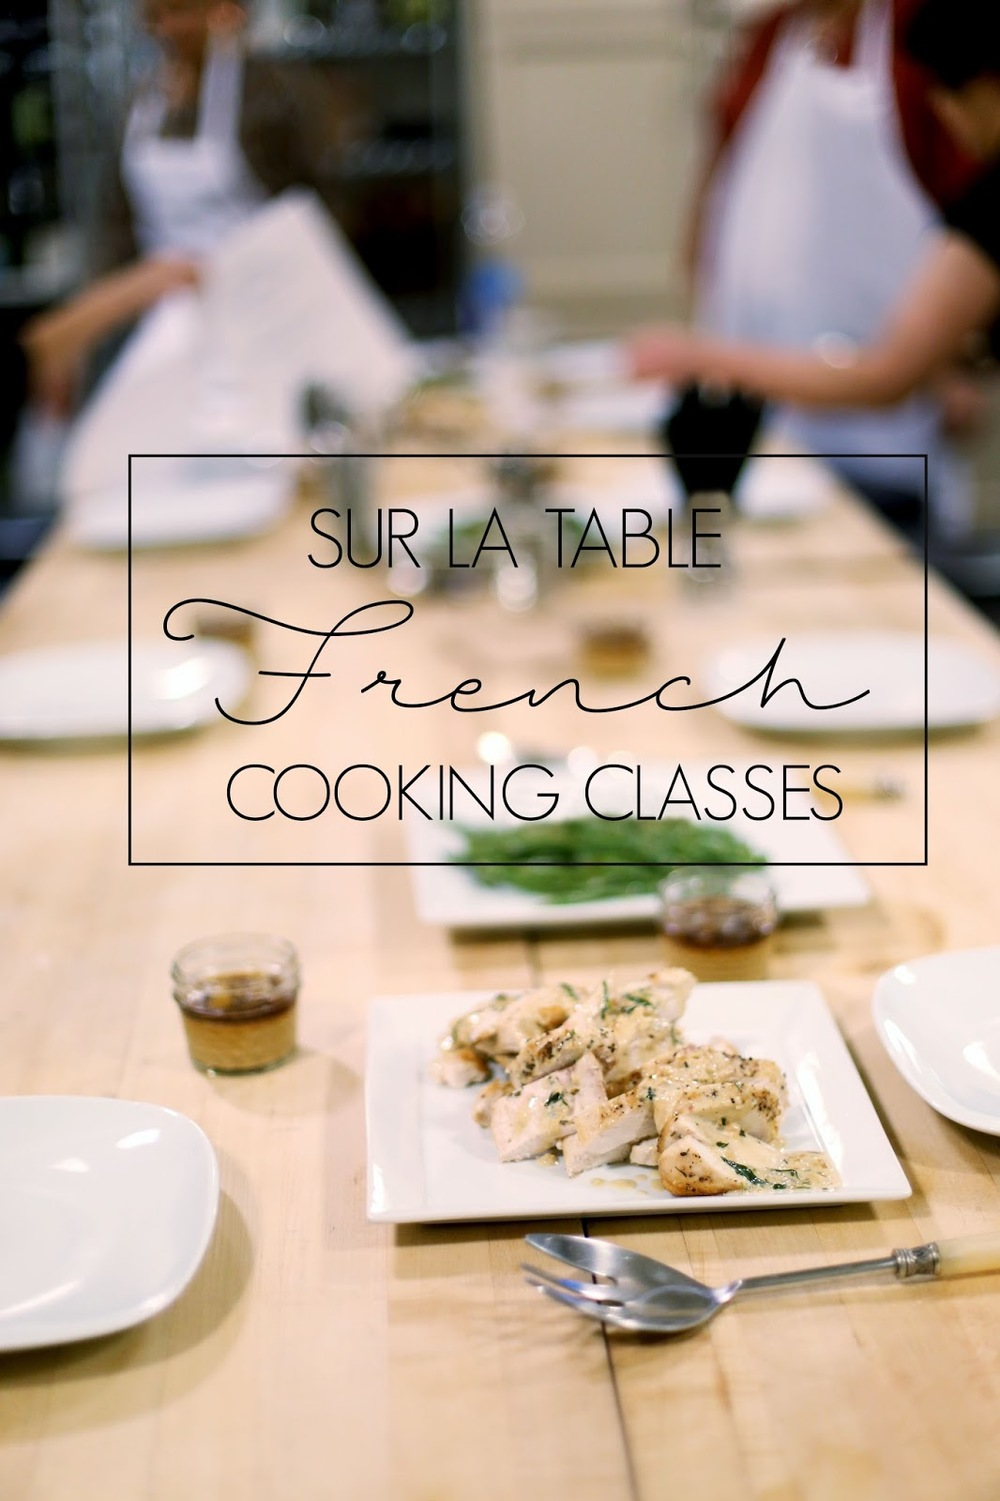 French Cooking Classes At Sur La Table